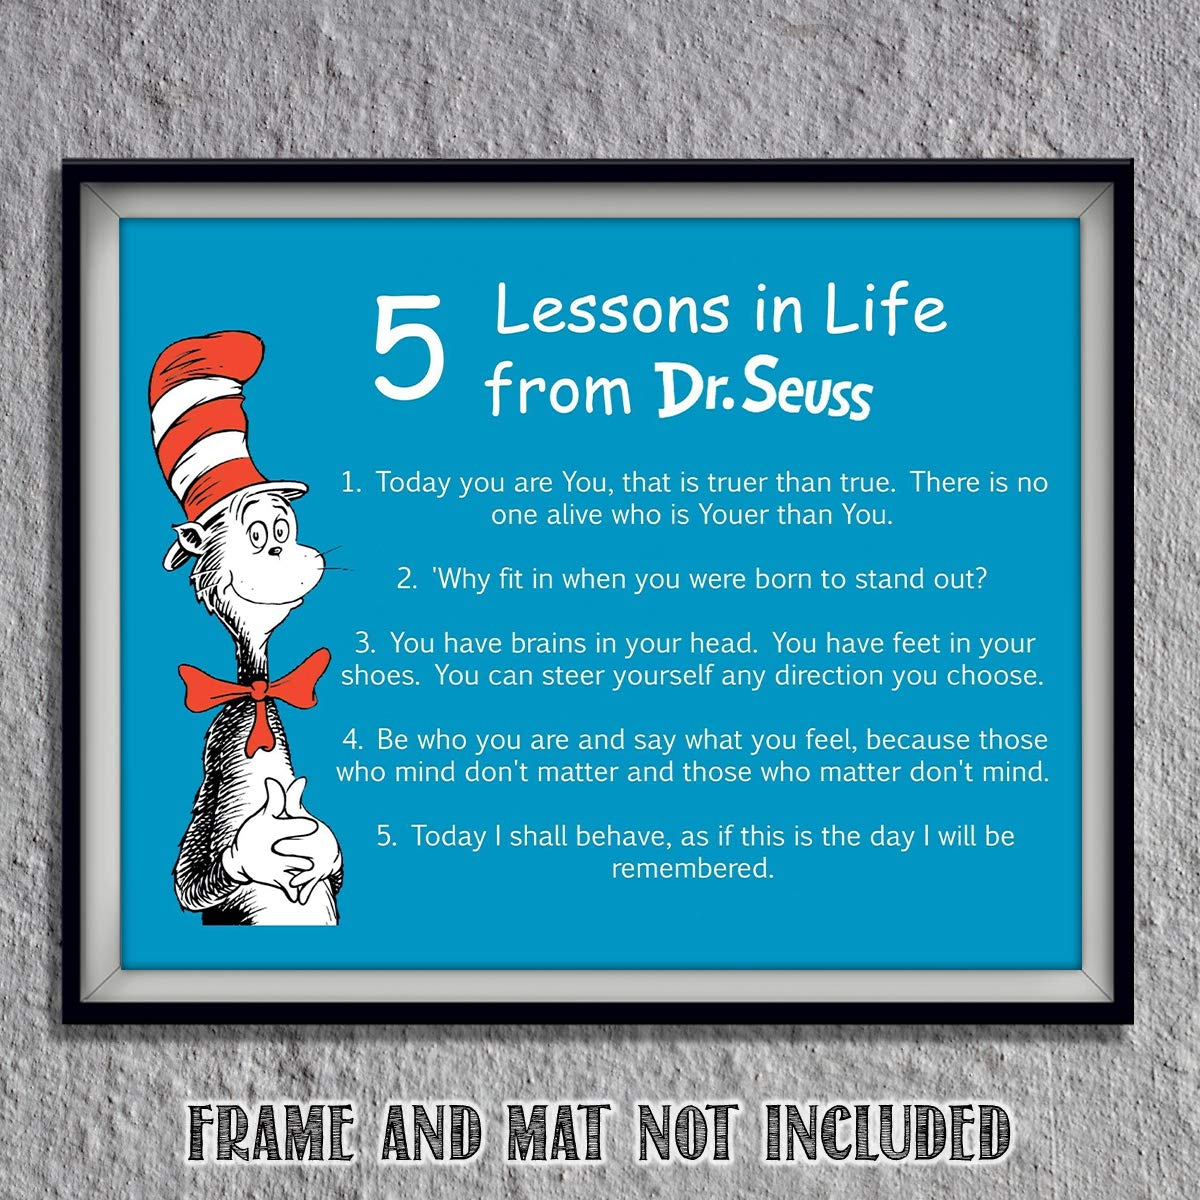 """Dr. Seuss Quotes Wall Art Sign- """"5 Lessons in Life""""- 8 x 10"""" Art Wall Print- Ready to Frame. Funny Home, Office & Class Décor. Designed for Kids, Applies To All. Makes an Amusing Conversation Starter."""